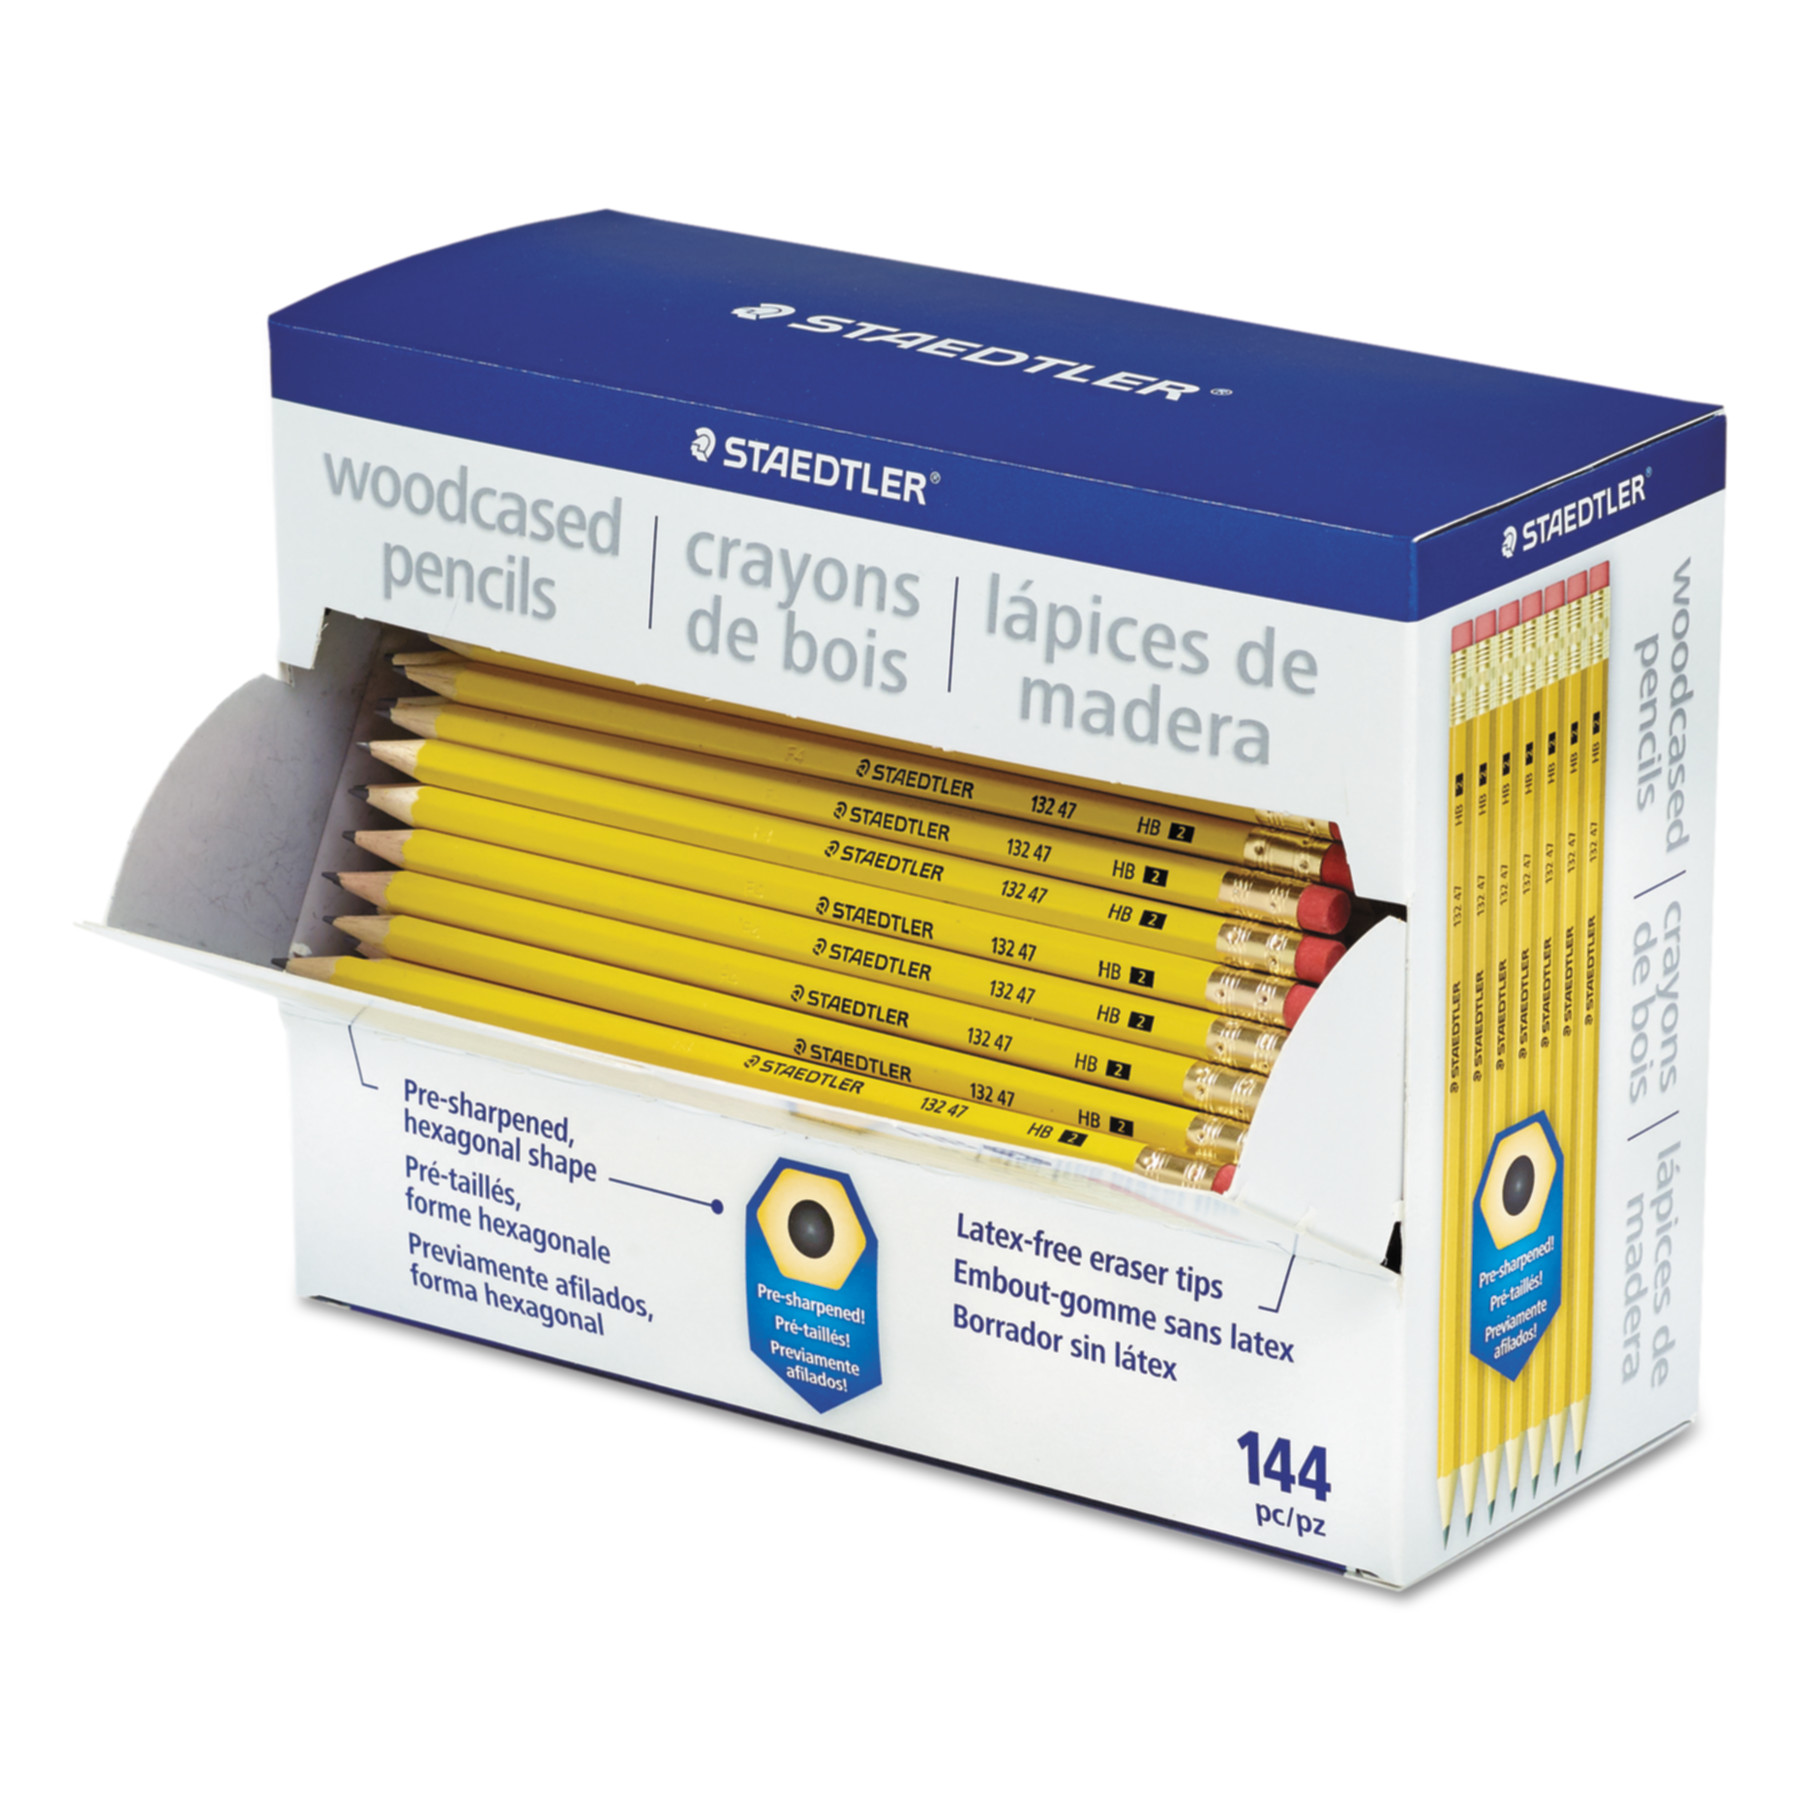 Staedtler Woodcase Pencil, Graphite Lead, #2 HB, Yellow, 144-Count